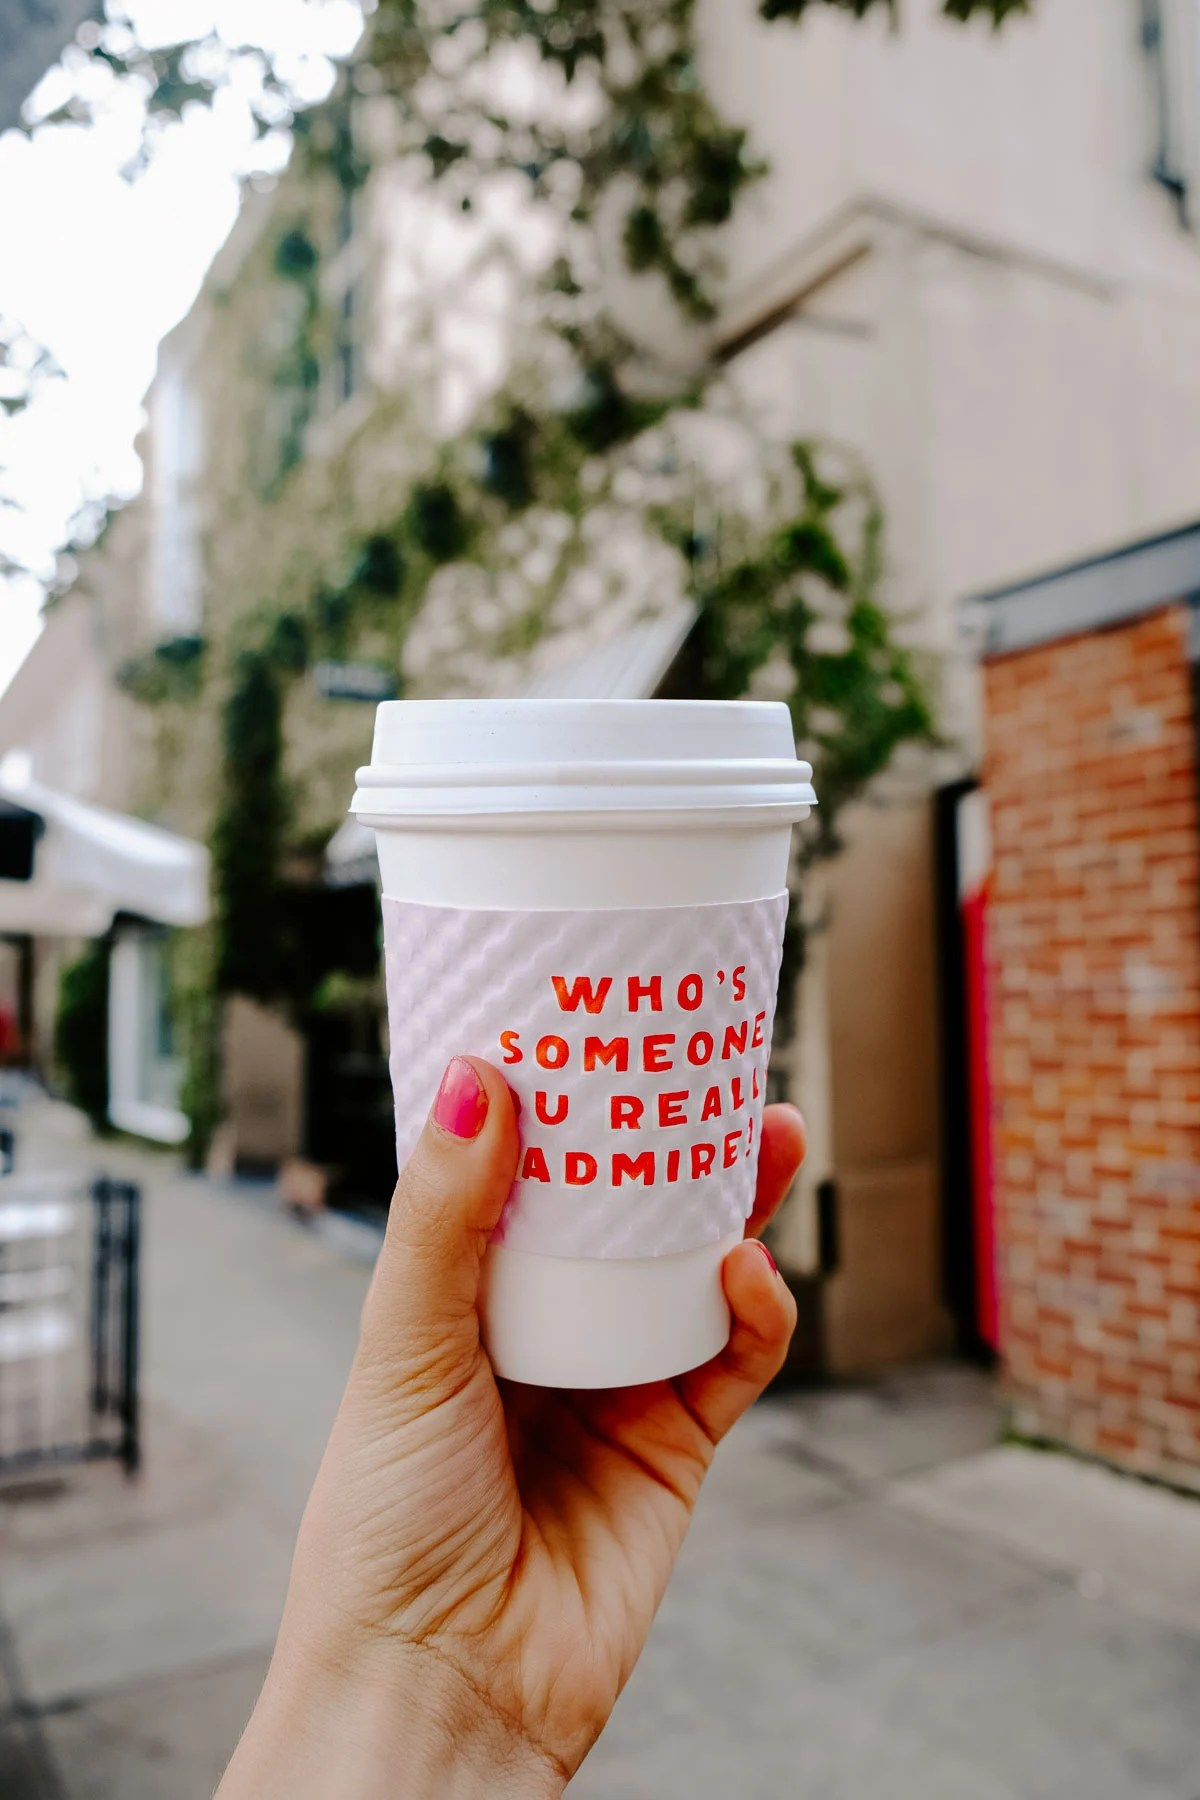 Planning a girl's trip to LA and need ideas on what to do? This chic girl's guide to LA has ideas on what to do, where to eat, where to shop, and where to stay, just to name a few! Alfred coffee is a great place to go!